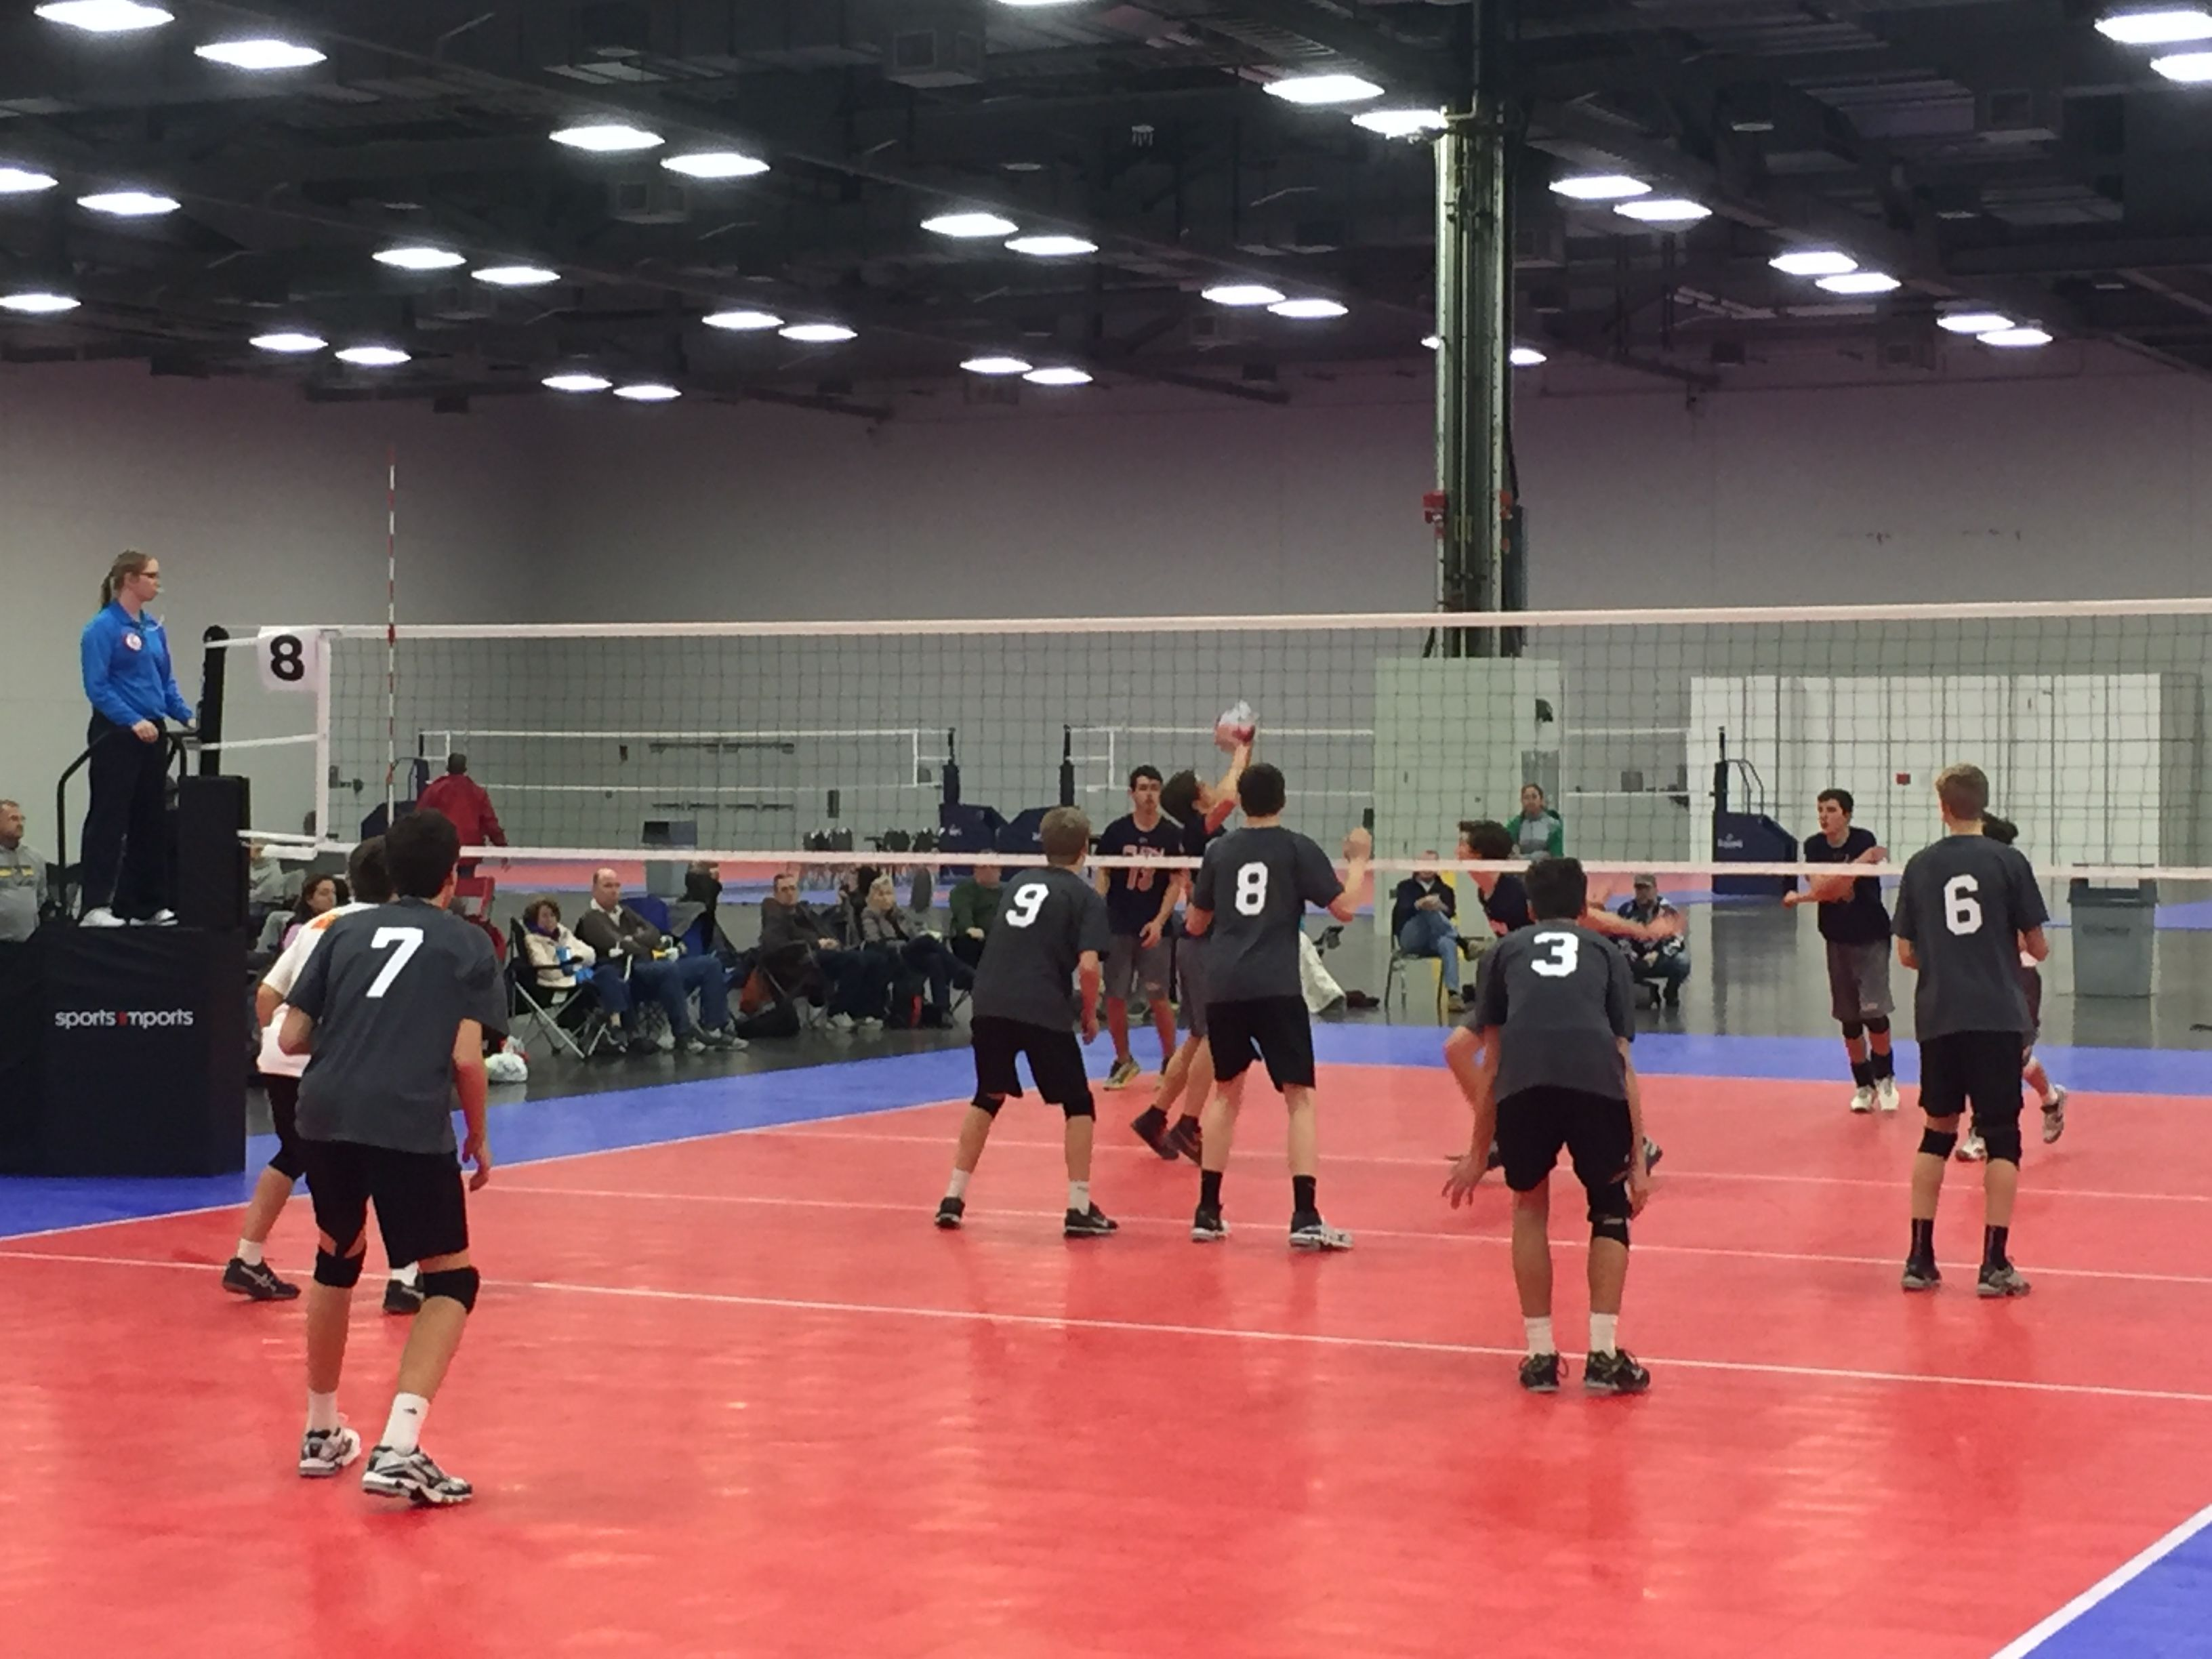 Boys Junior Nationals Club Volleyball Columbus Ohio Sports Imports Portables Volleyball Equipm Outdoor Volleyball Net Volleyball Equipment Volleyball Net